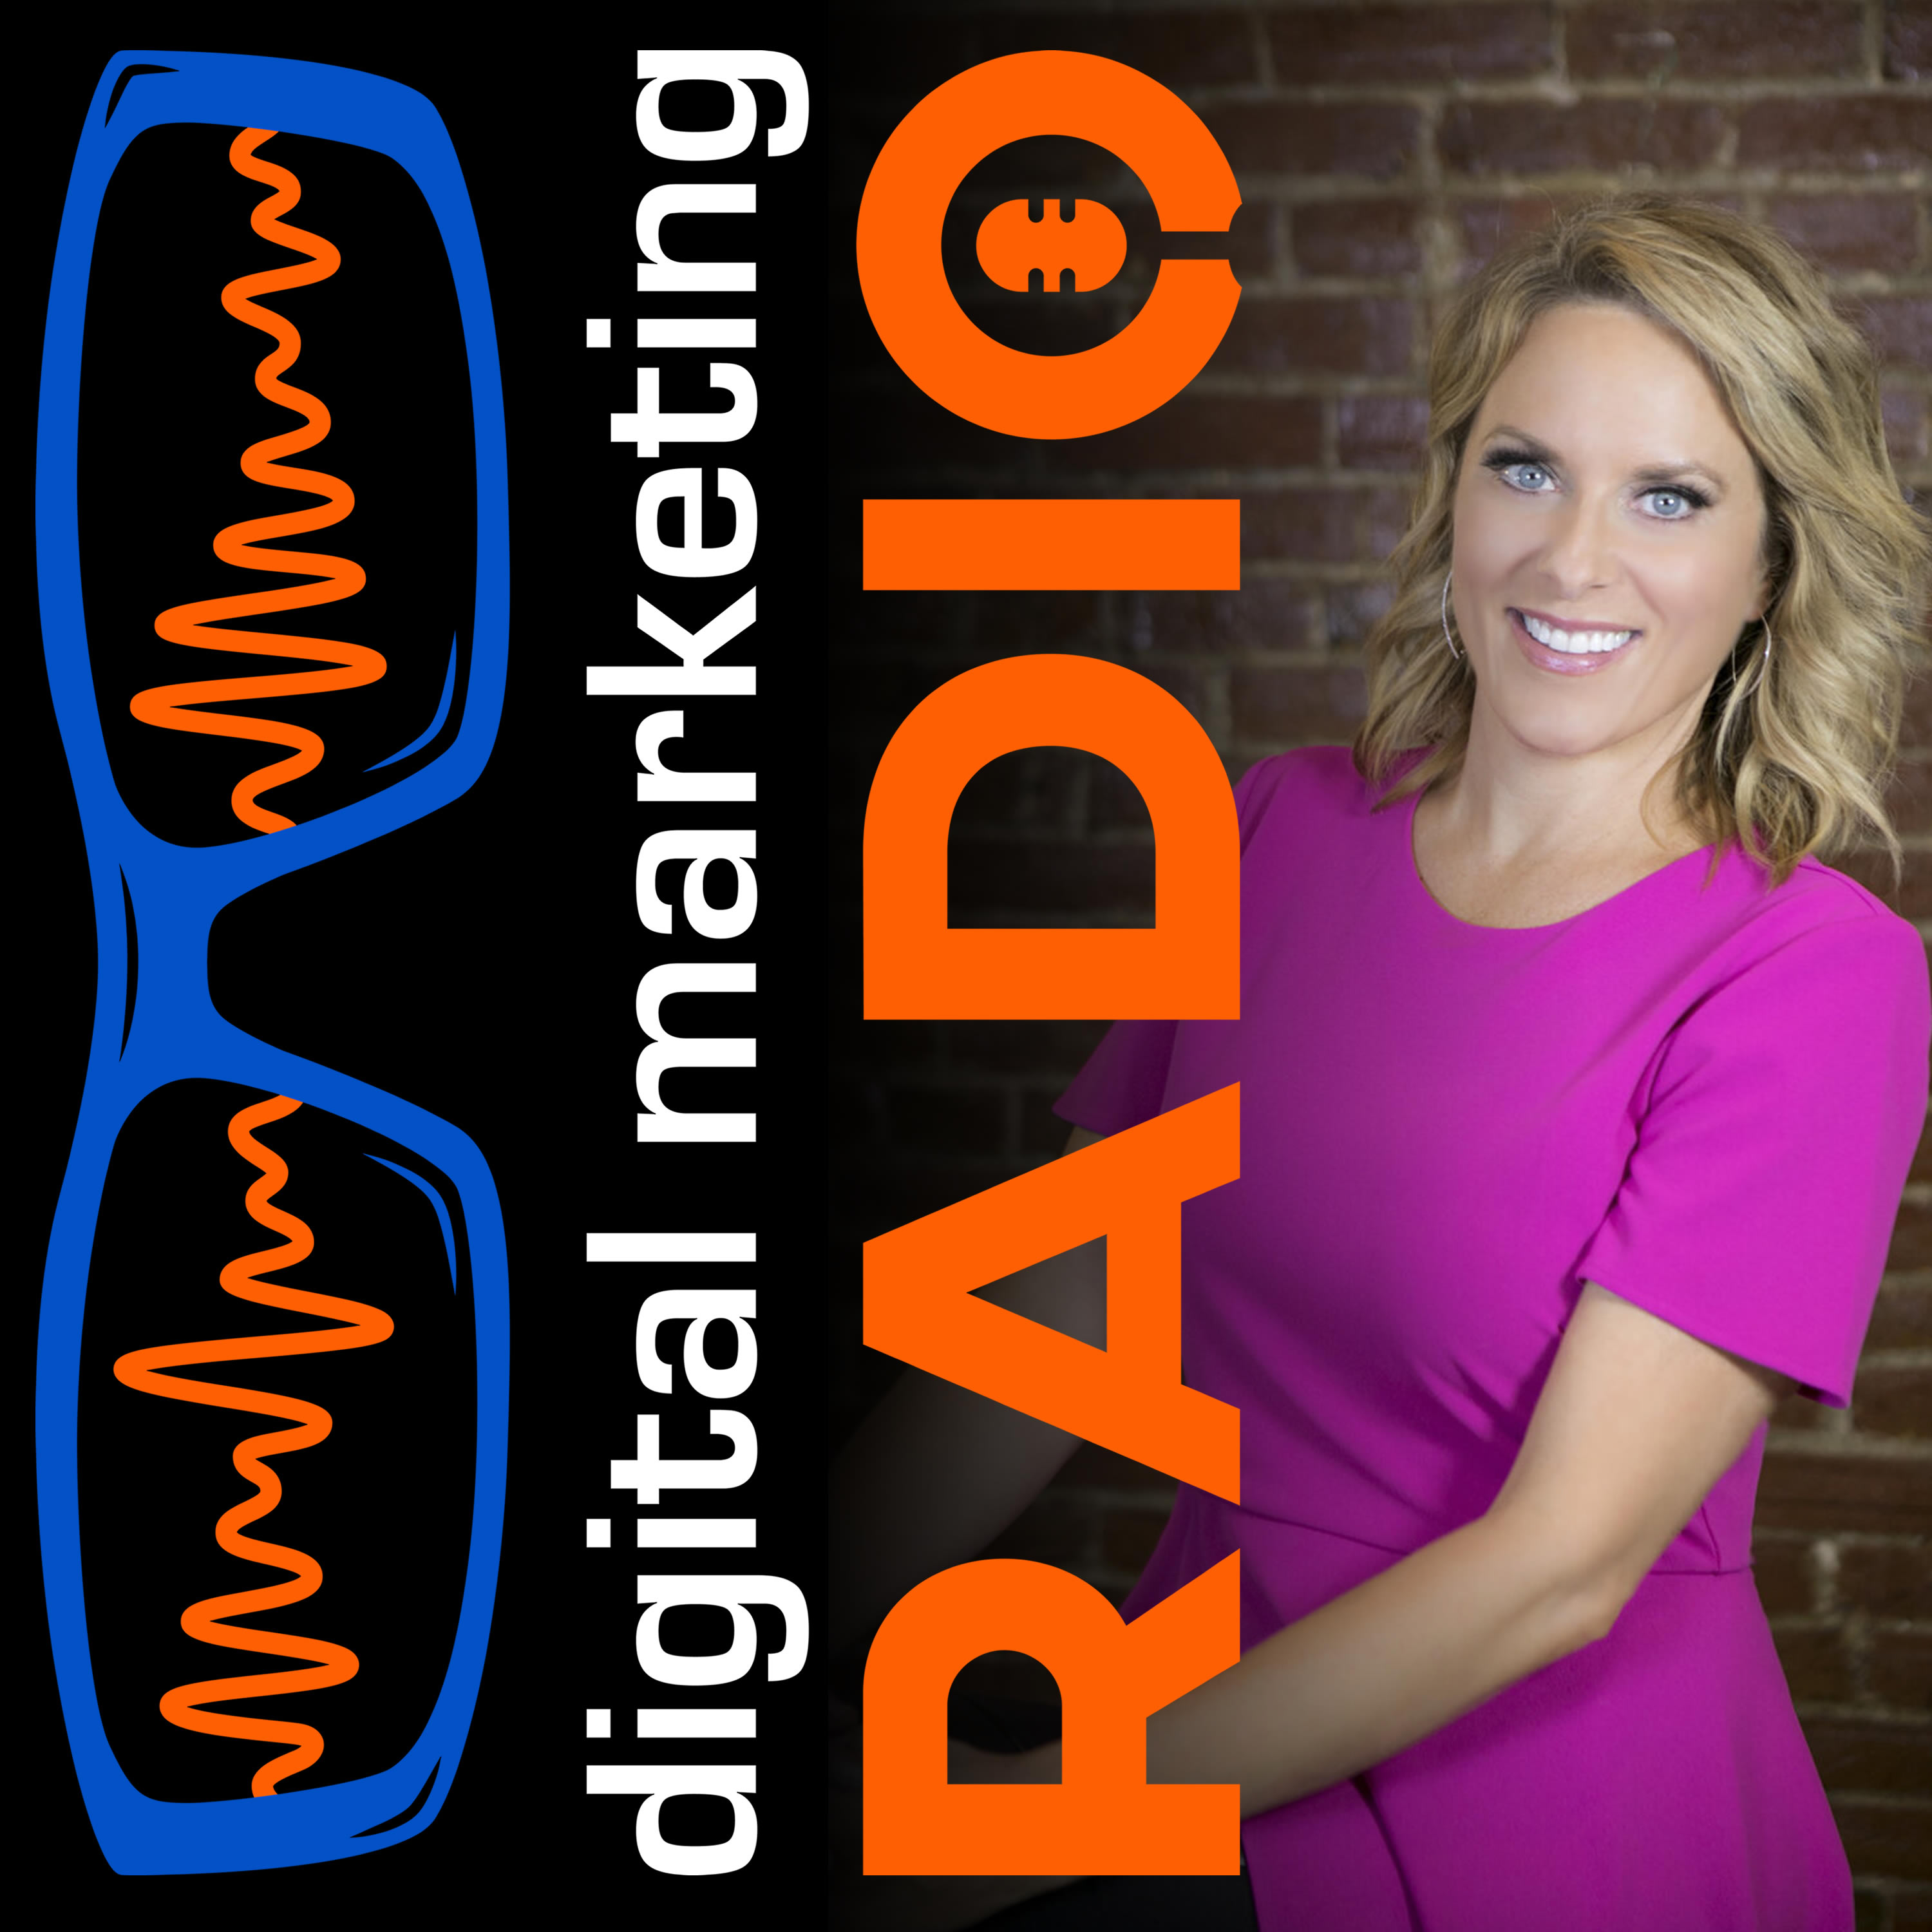 How to be an effective brand ambassador in the digital world - with Kerry Barrett